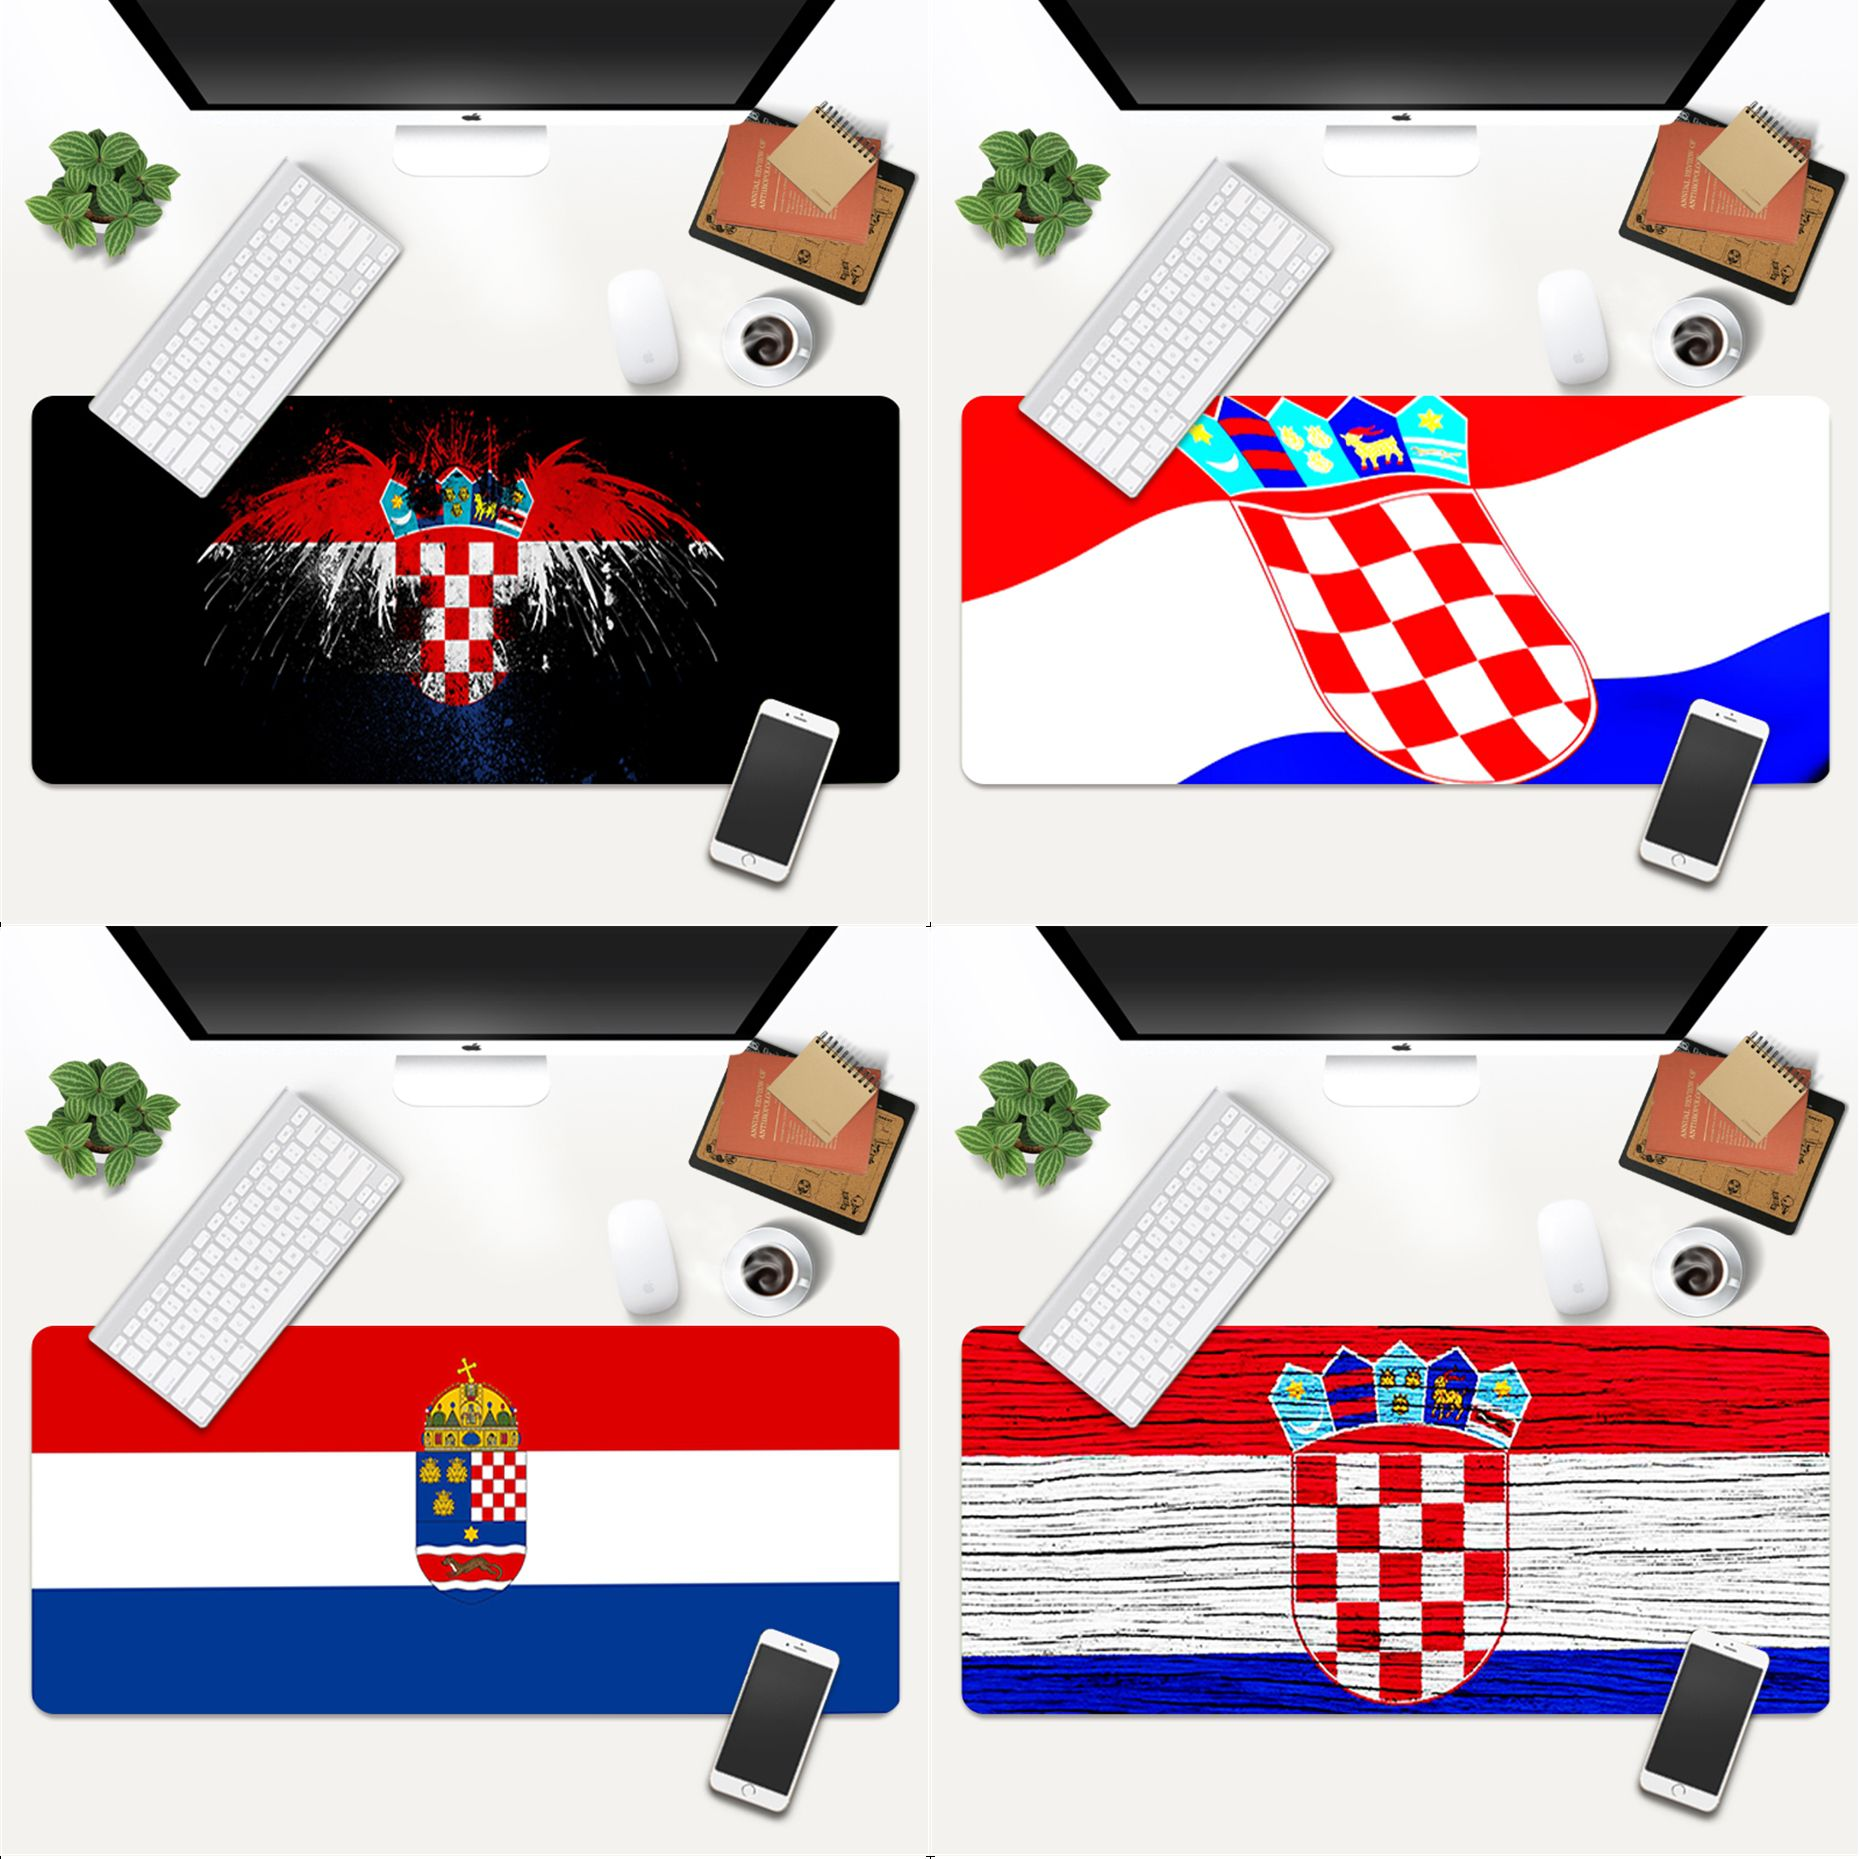 Your Own Mats Croatia flag Anti-Slip Durable Rubber Computermats Gaming Mouse Pad Large Deak Mat 700x300mm for overwatch/cs go